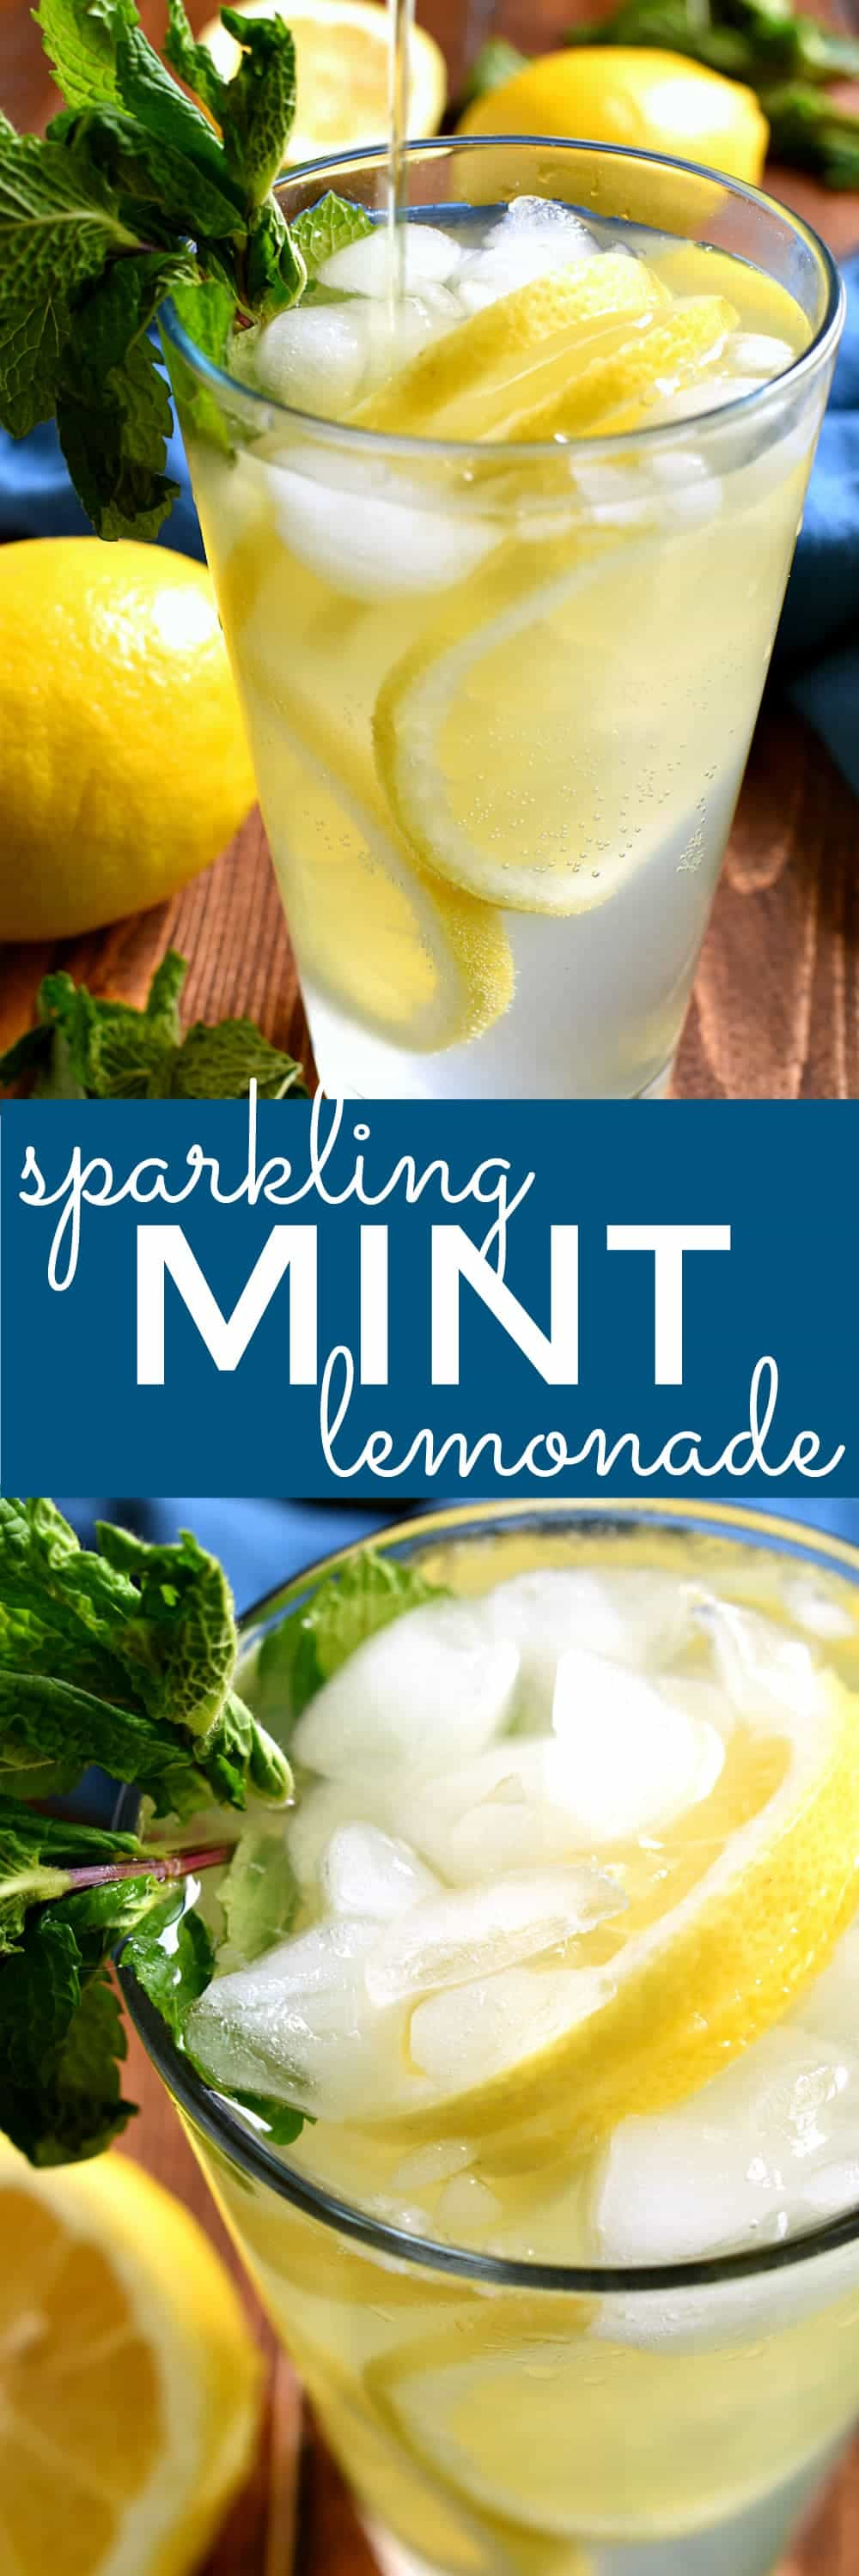 This Sparkling Mint Lemonade is the perfect drink for summer! It's light, refreshing, and packed with the delicious flavor of mint. If you love lemonade, you'll love this fresh new twist!